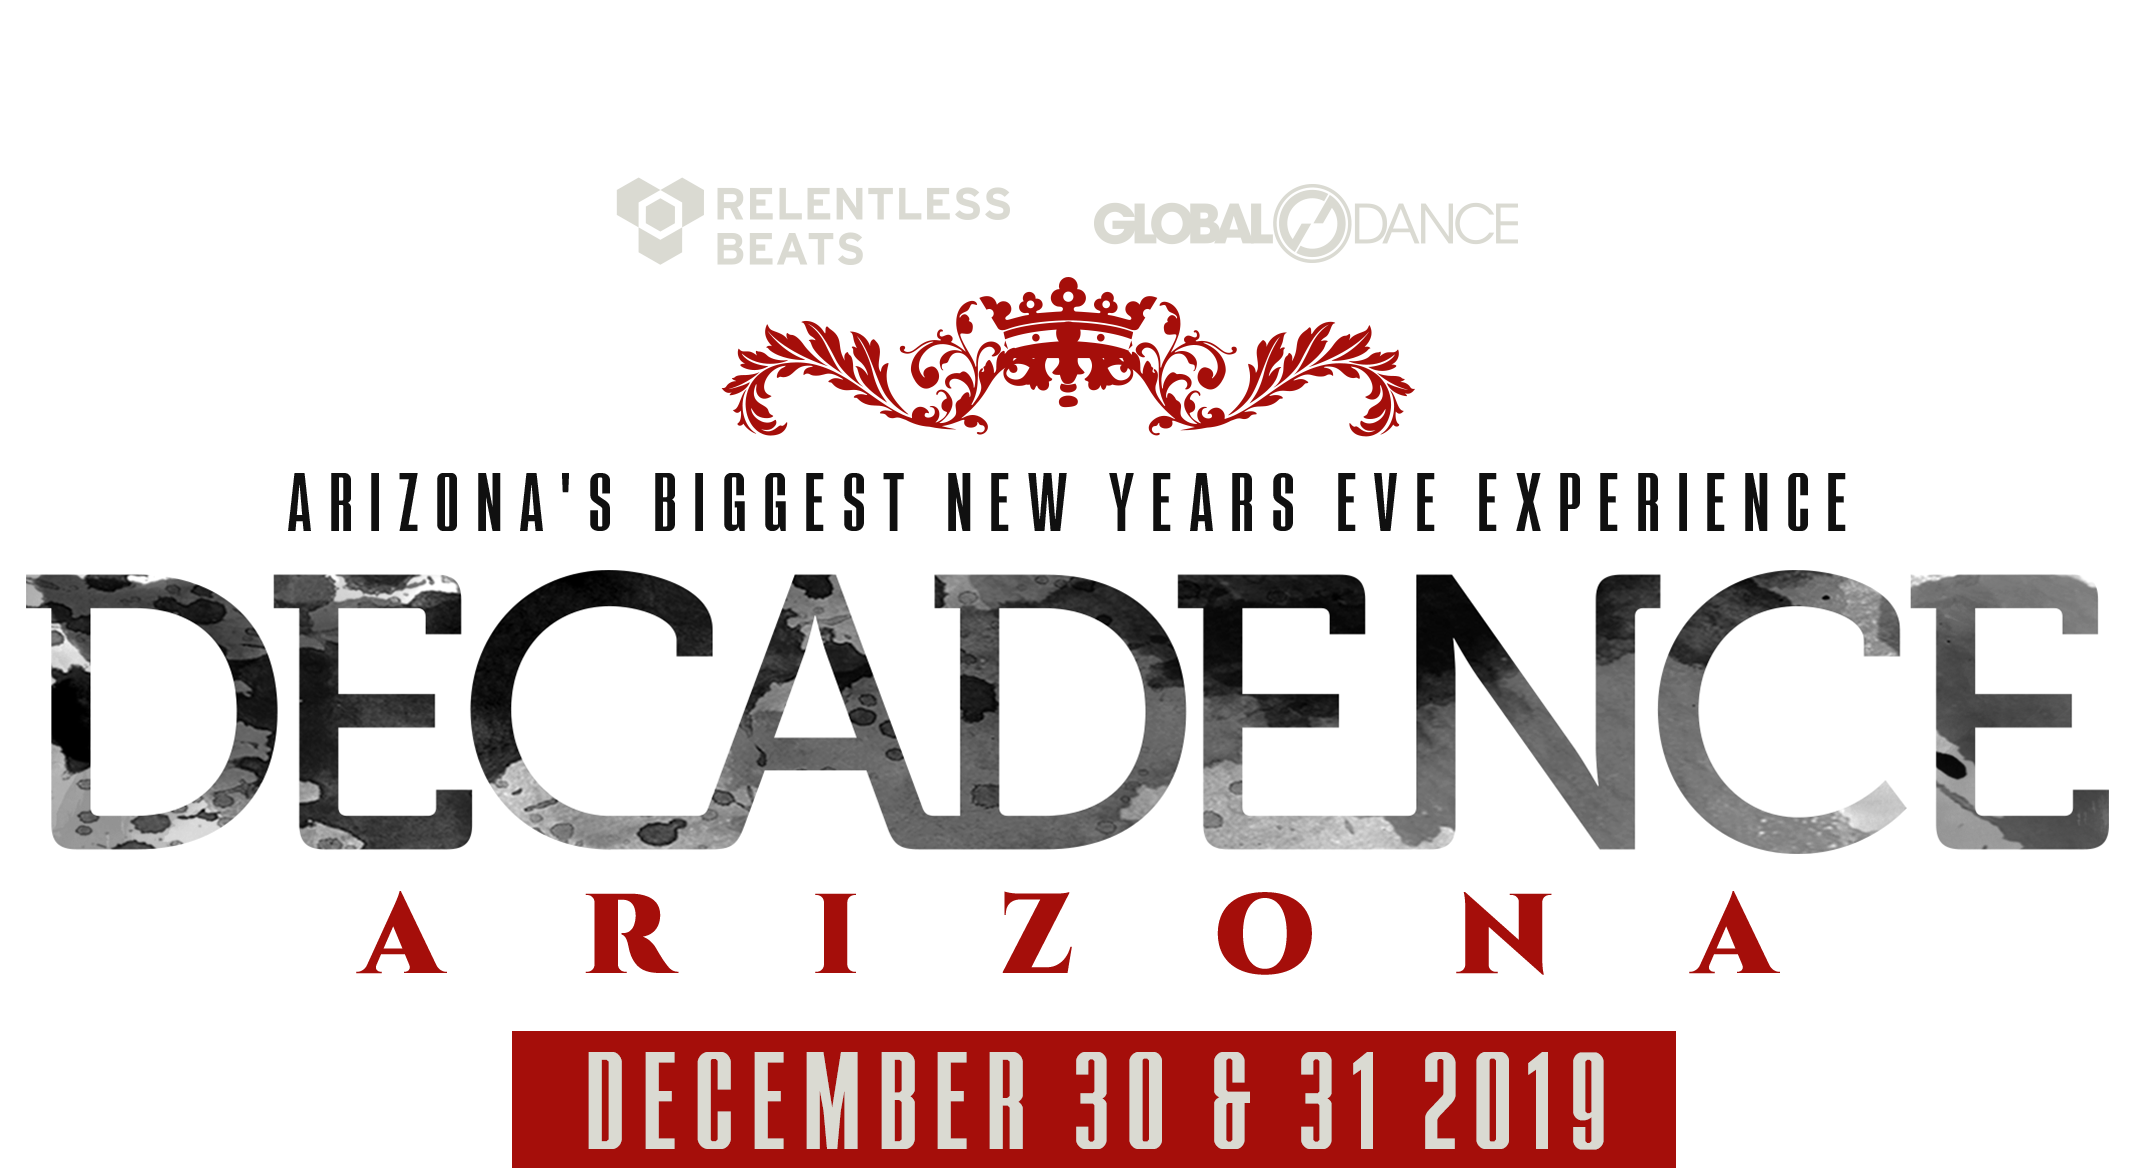 Decadence Arizona | December 30-31, 2019